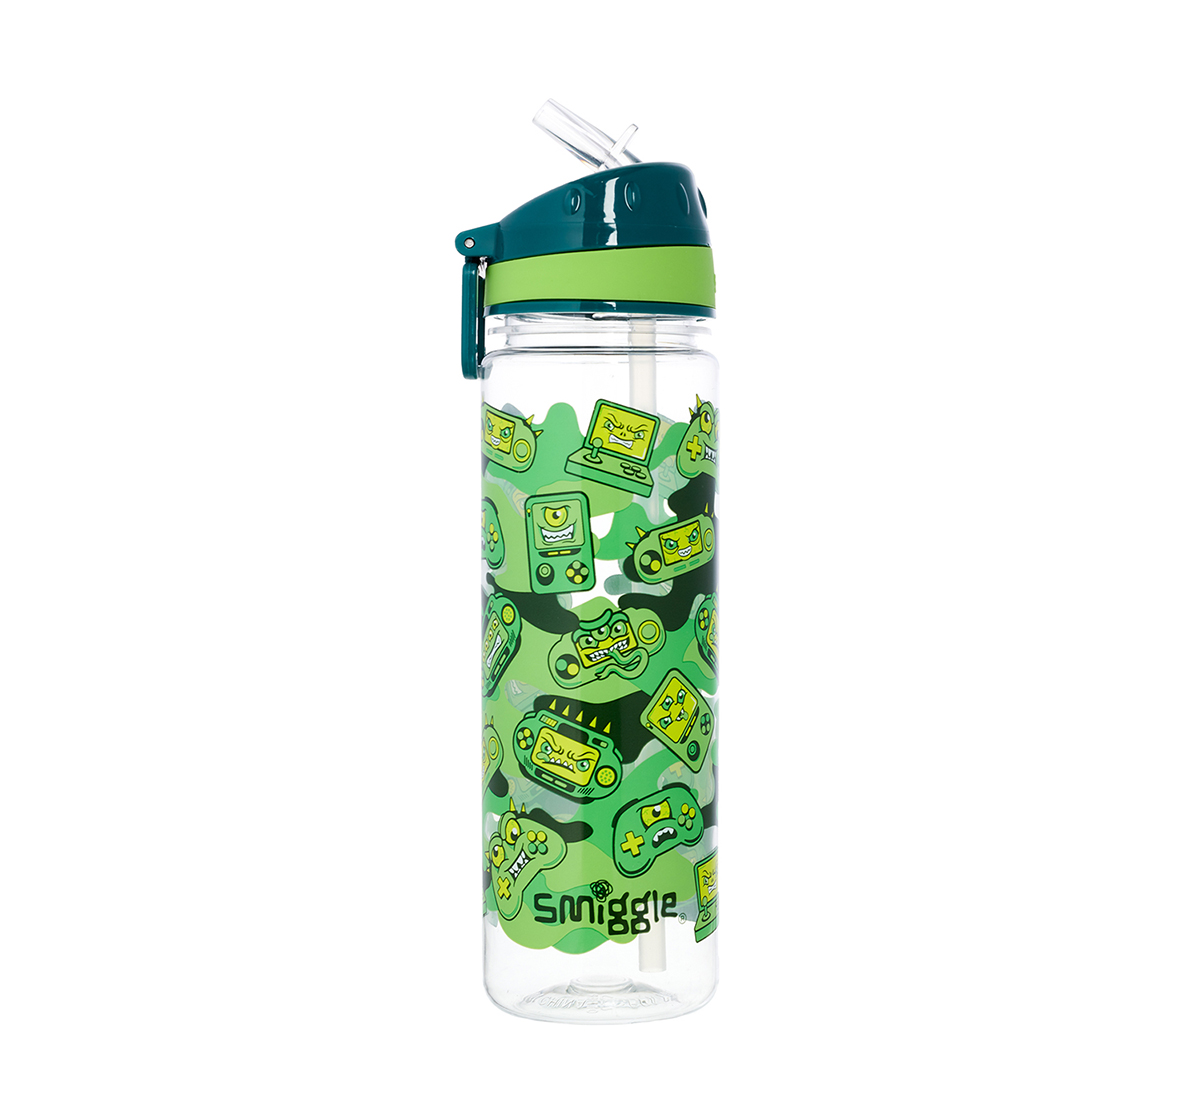 Smiggle    Smiggle Far Away Drink Bottle with Flip Top Spout - Gaming Print Bags for Kids age 3Y+ (Green)